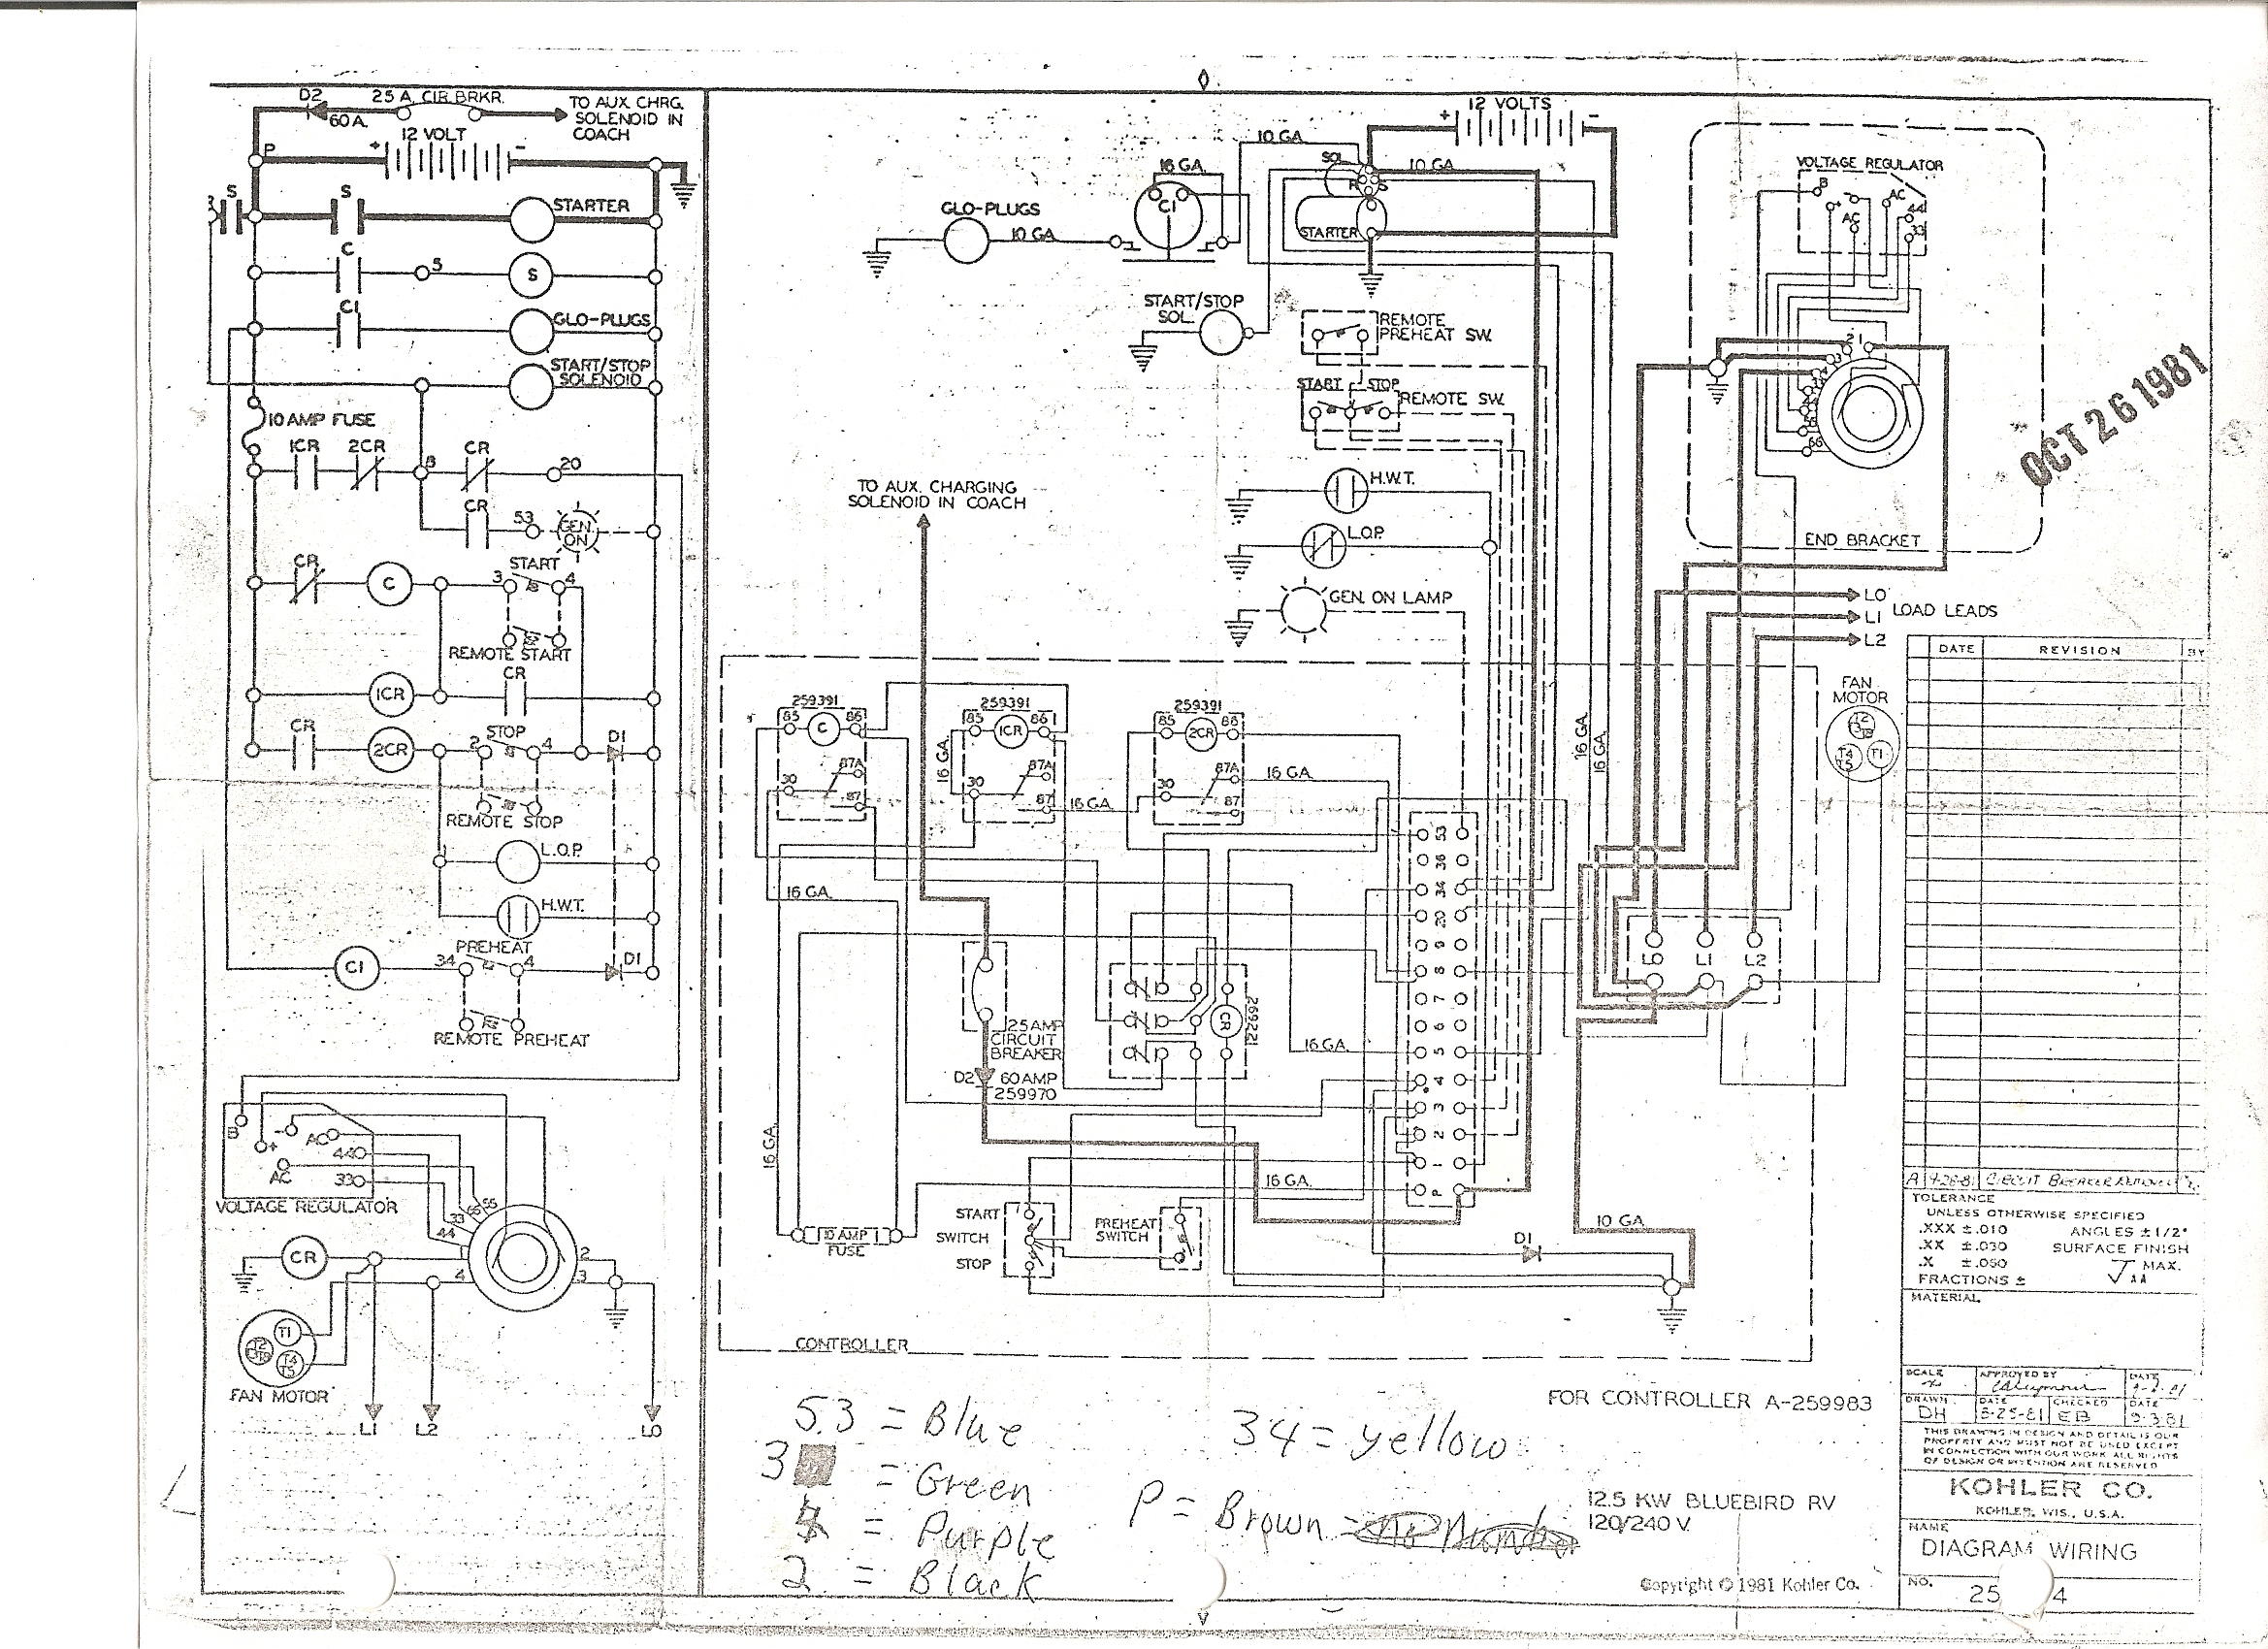 Perkins Genset Engine & Kohler Manuals and Information - Wanderlodge ...